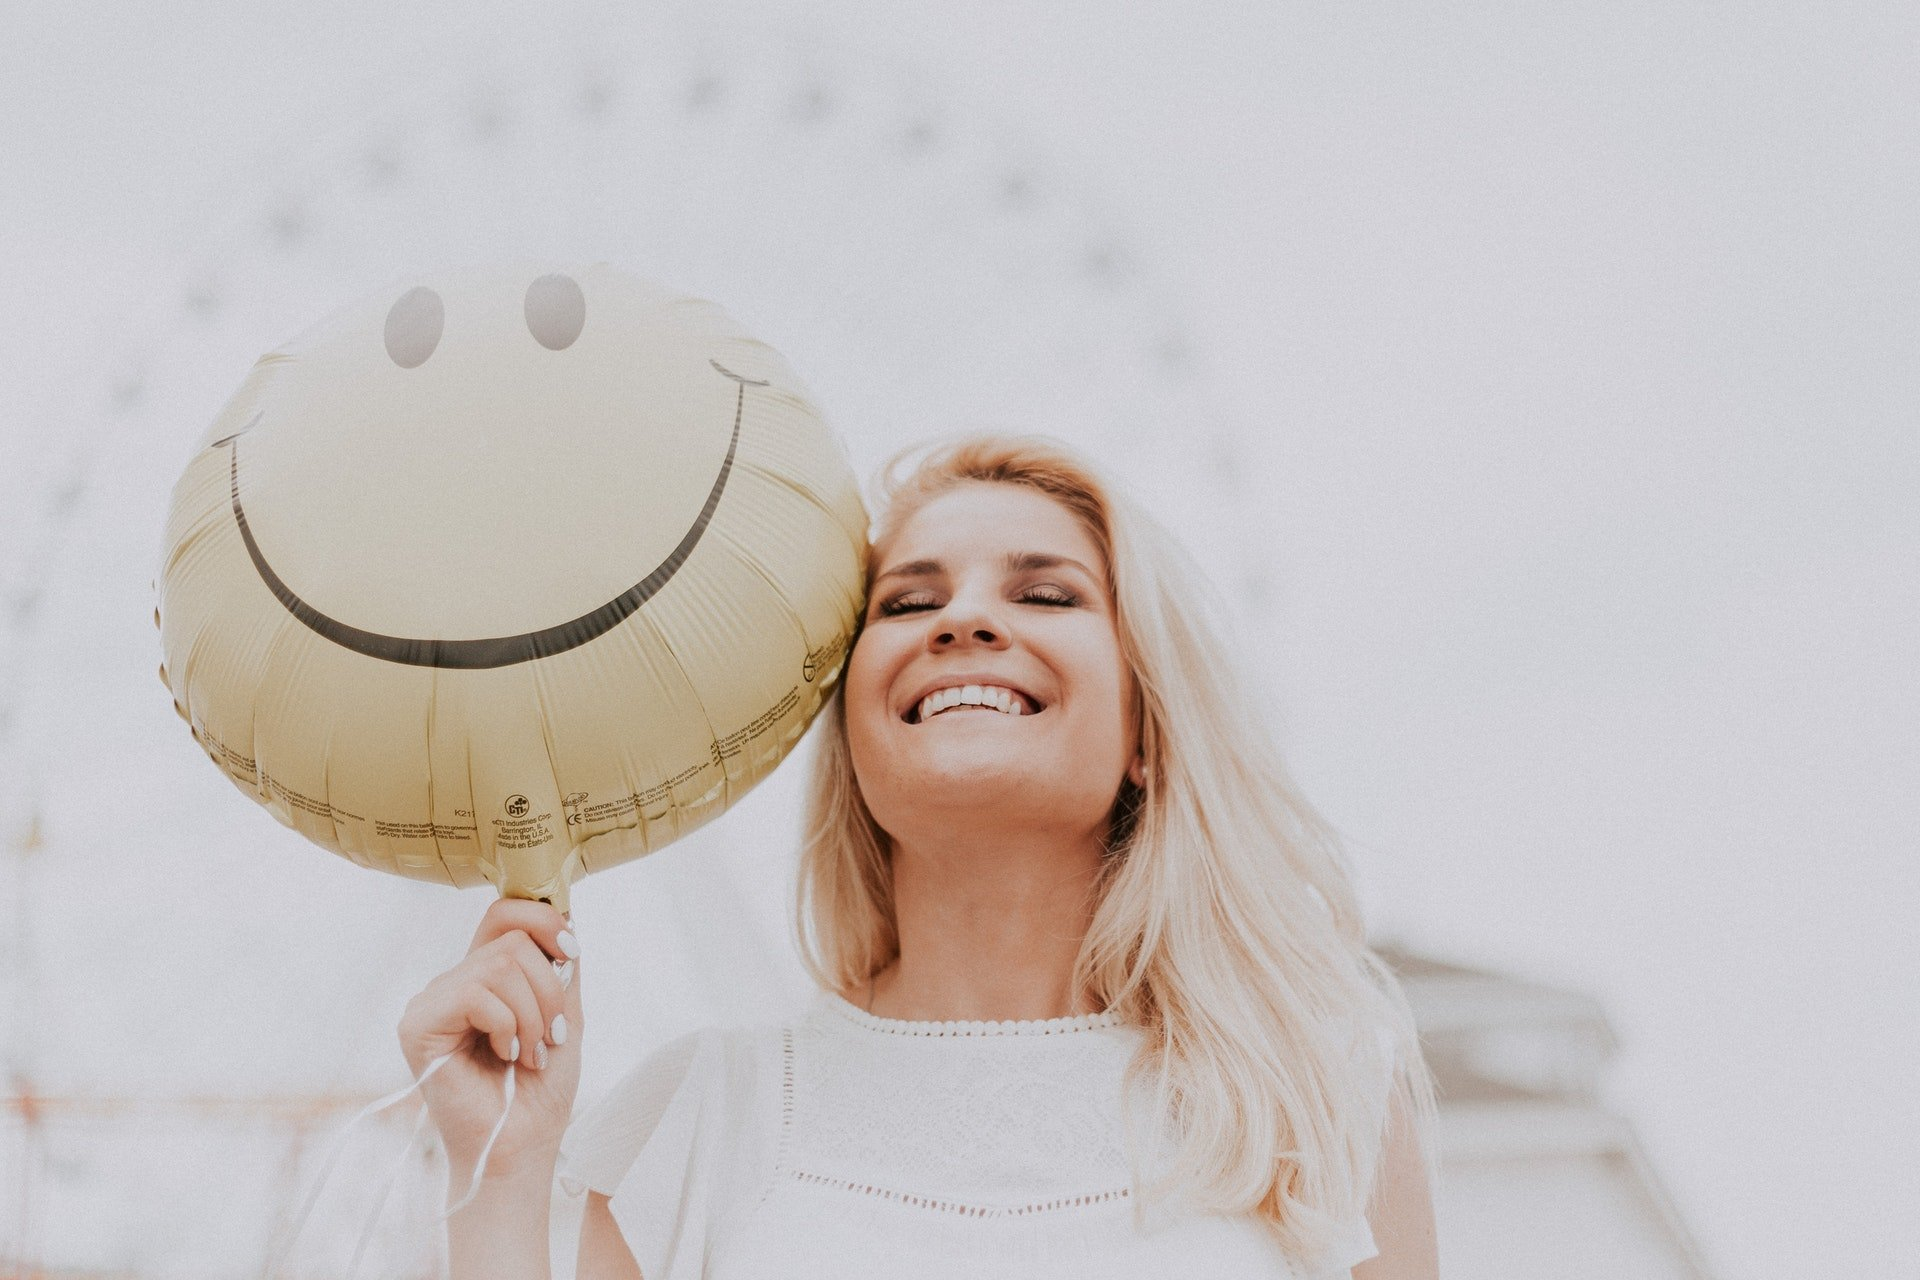 smiling person with happy face ballon